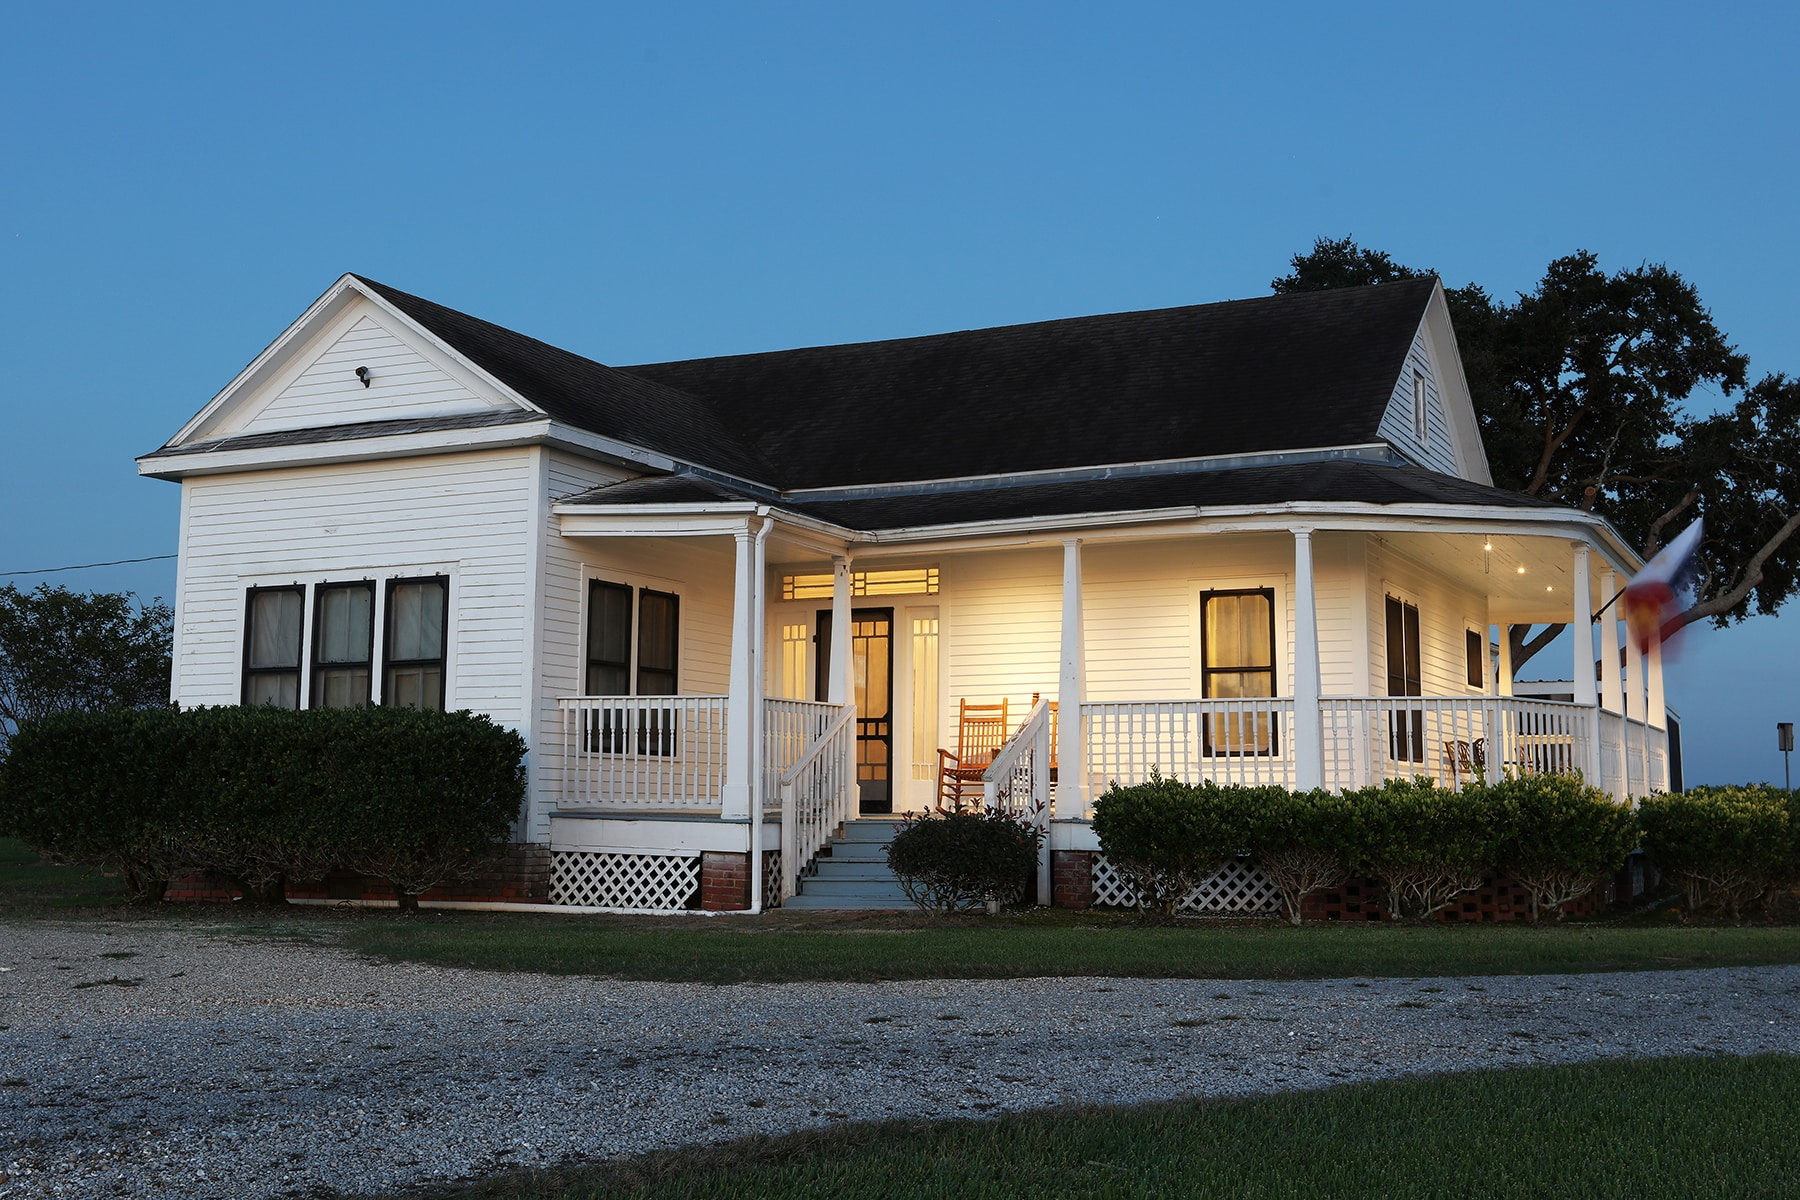 Crawfish Haven/Mrs. Rose's Bed and Breakfast